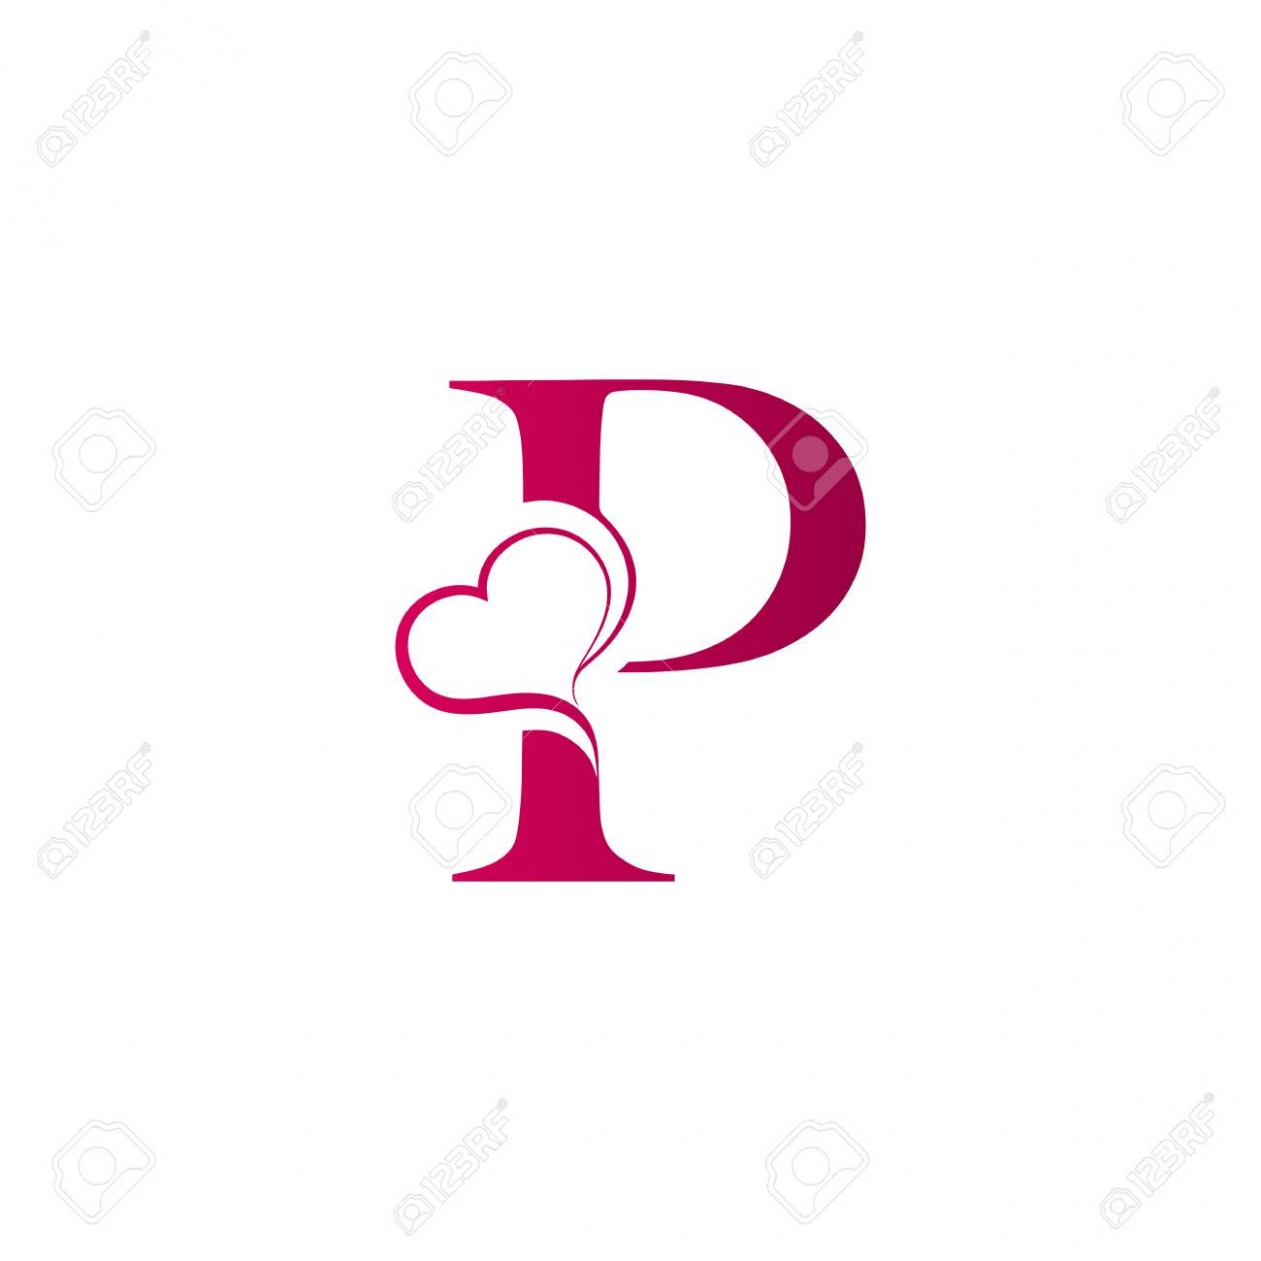 p letter logo with heart icon, valentines day concept p&c kleider